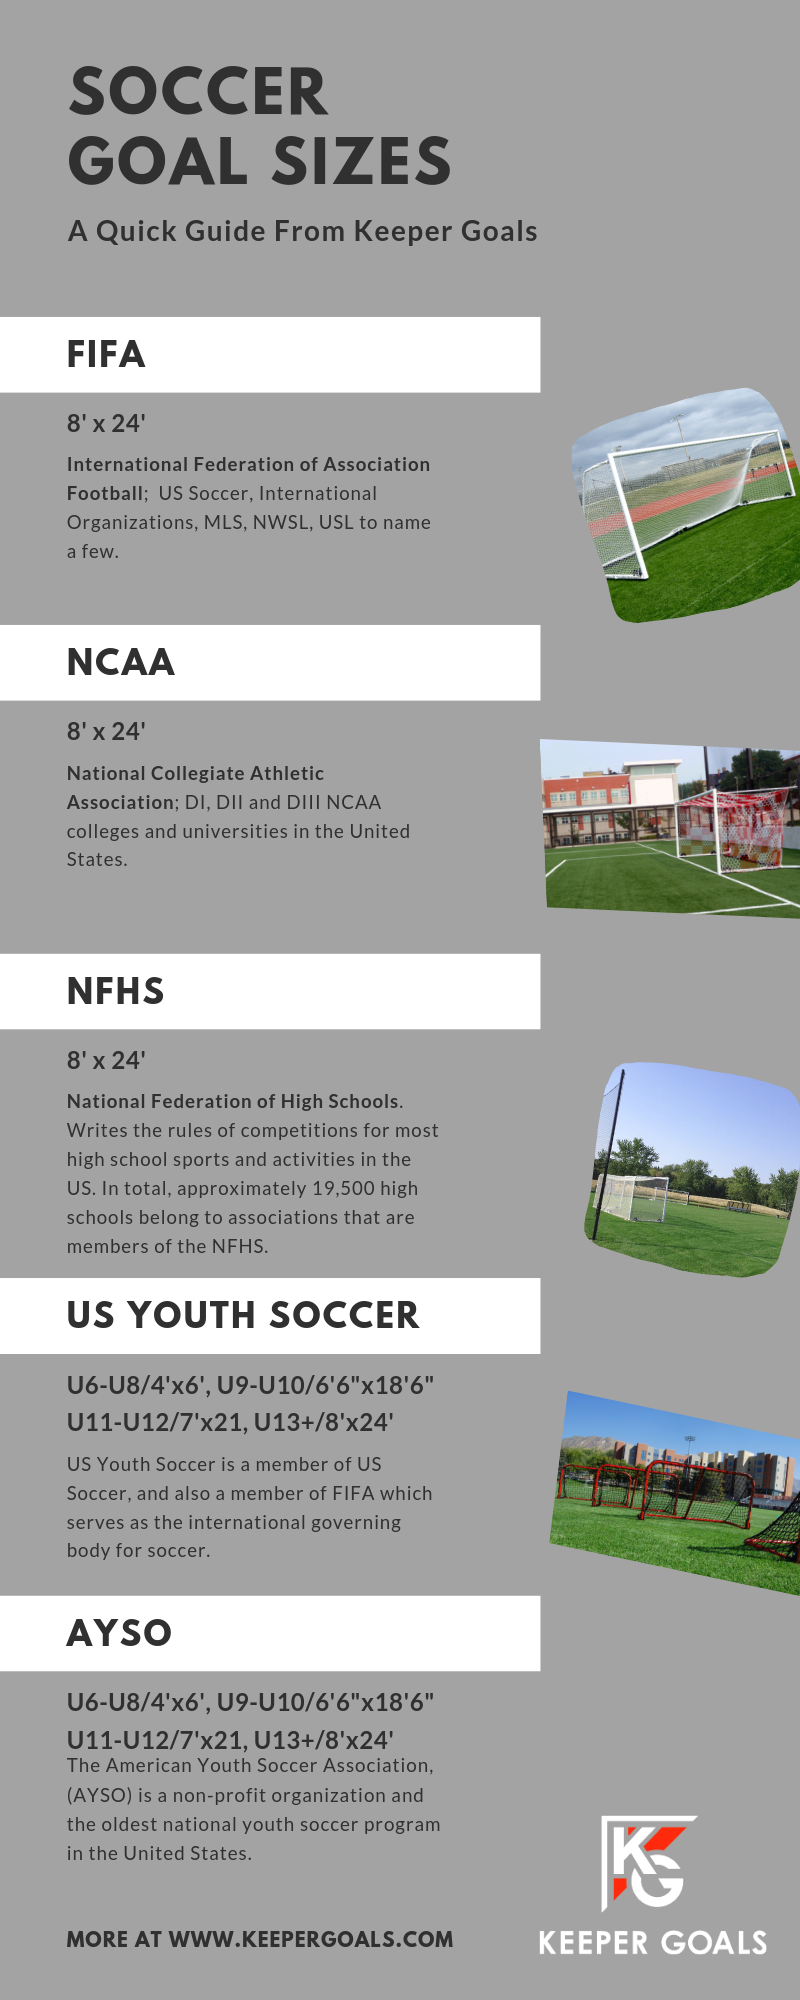 Soccer Goal Size Chart - Soccer goal sizes for several major soccer organizations used in the United States including FIFA, the NCAA, NFHS, US Youth Soccer and AYSO.